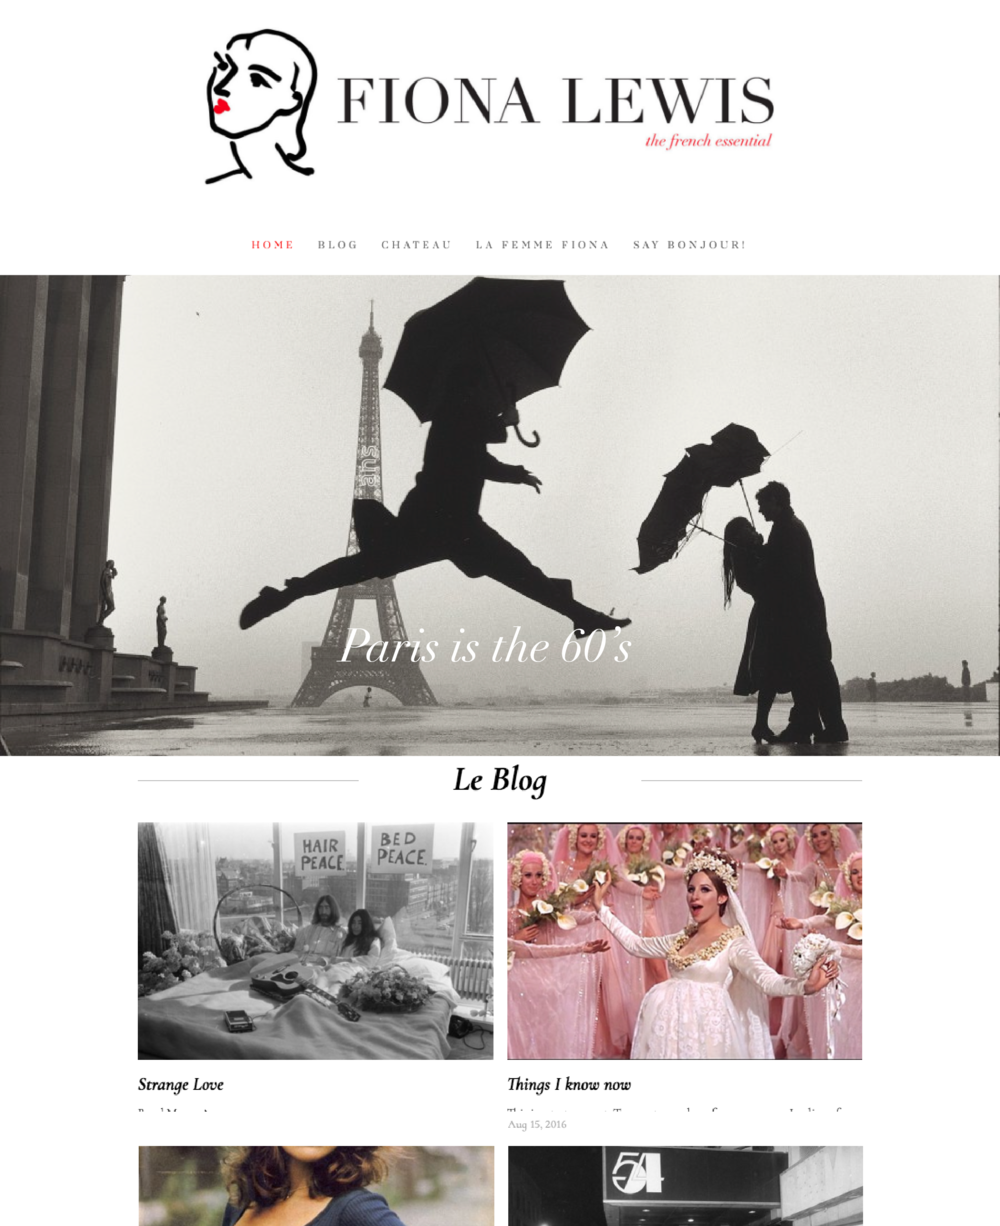 Fiona Lewis Blog Design and Branding